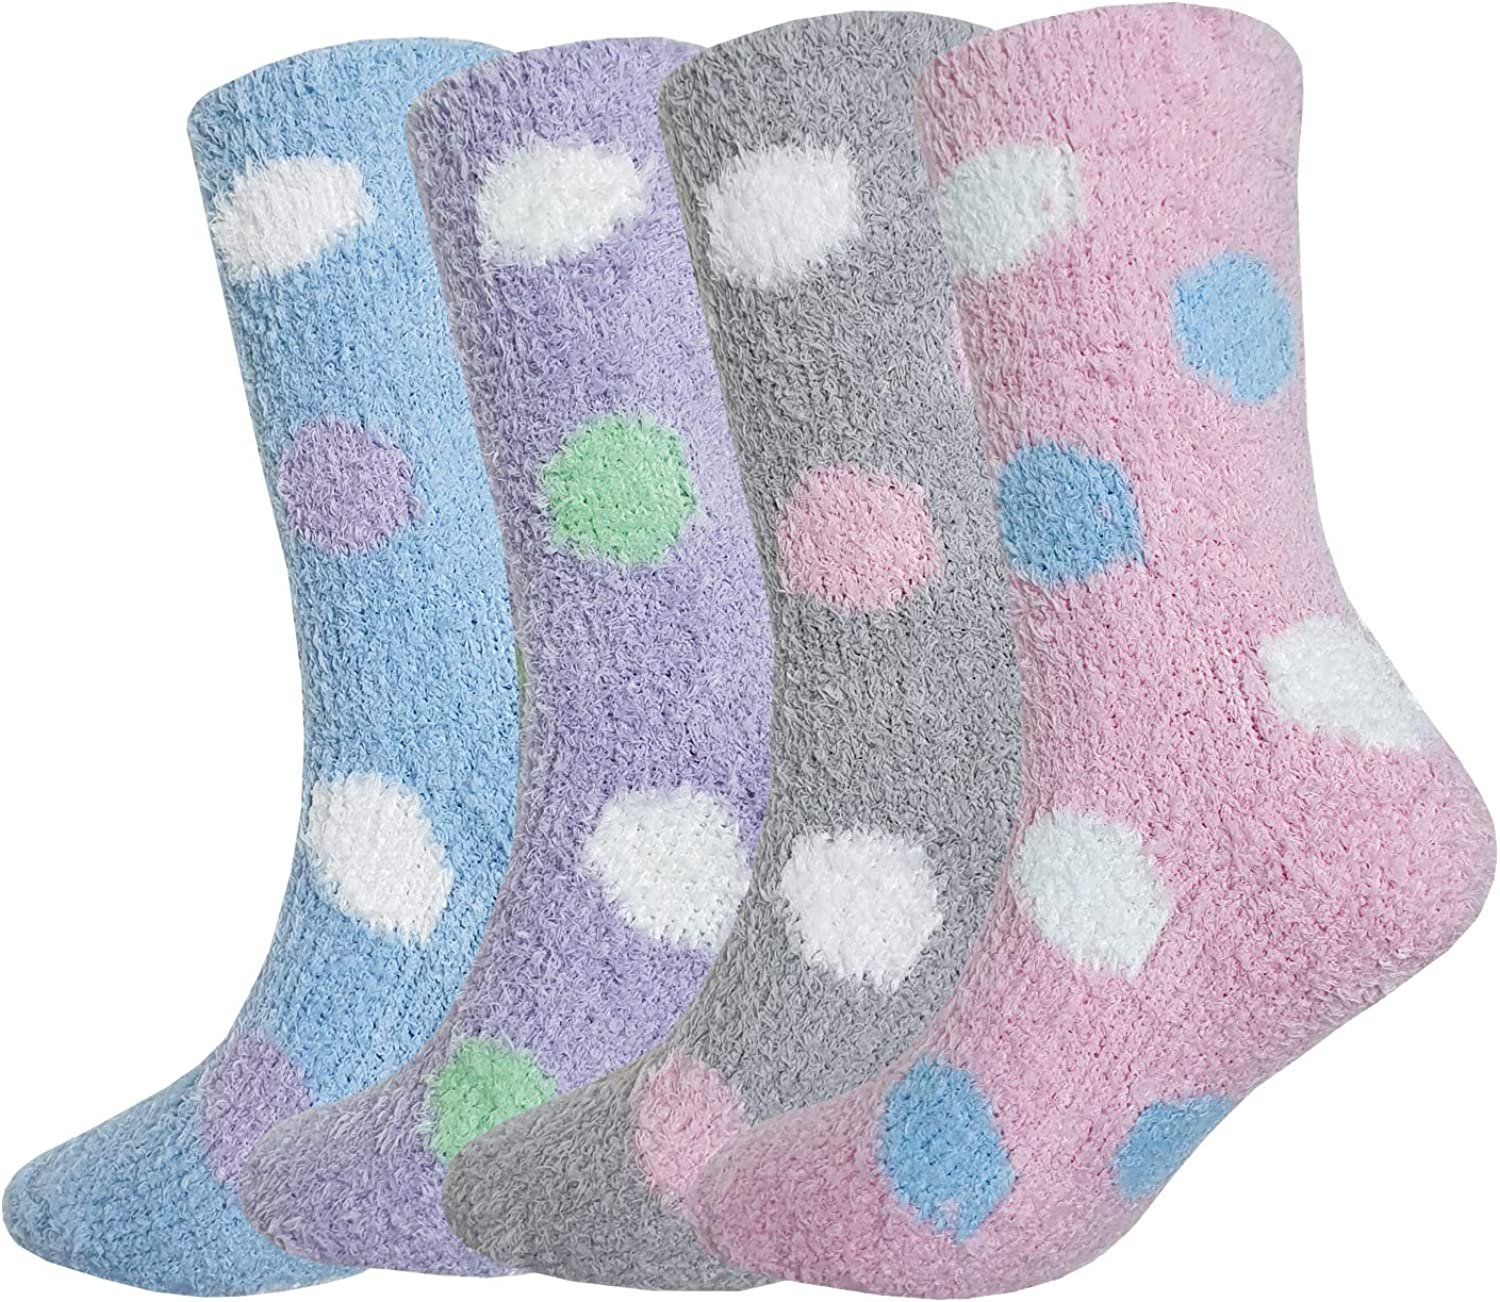 Tom & Mary Women's Non Skid Fuzzy Socks, Silicone Grippers, Thermal, Cozy Soft Warm Plush Slipper Socks (4 Pairs)